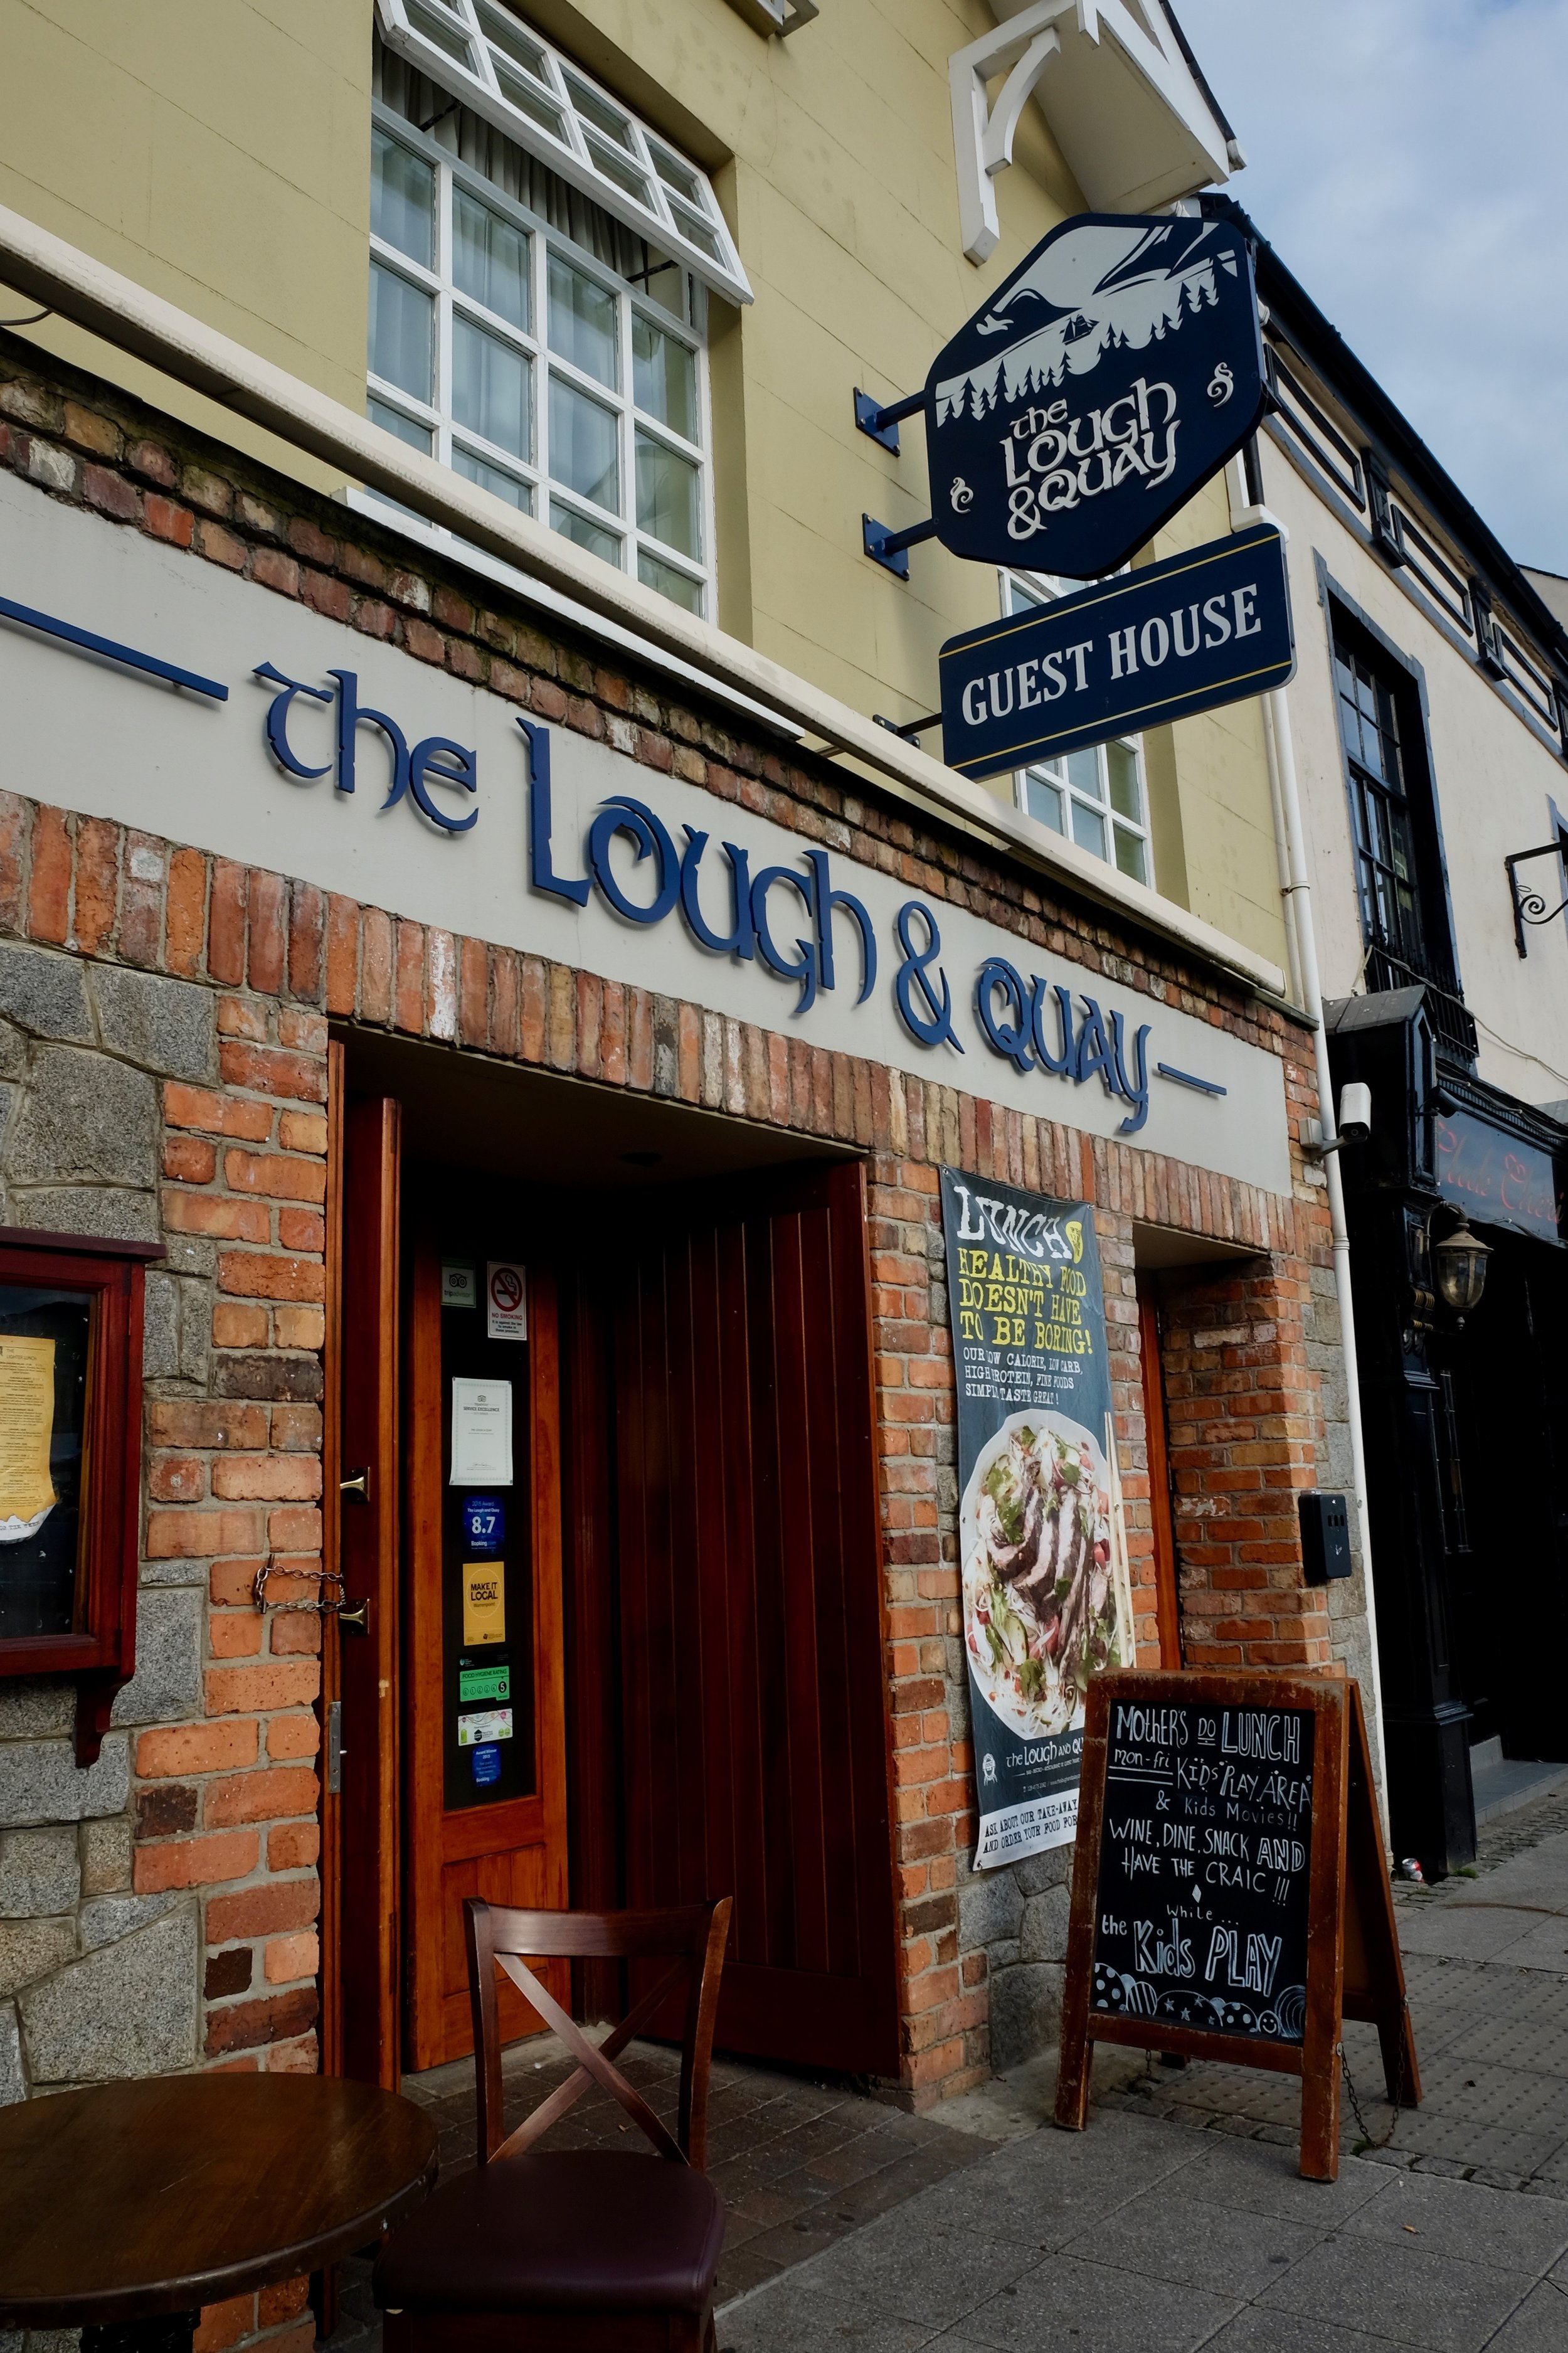 The Lough and Quay,1-3 Marine Parade, Warrenpoint BT34 3NB, +44 (0) 28 4175 2082, info@theloughandquay.com